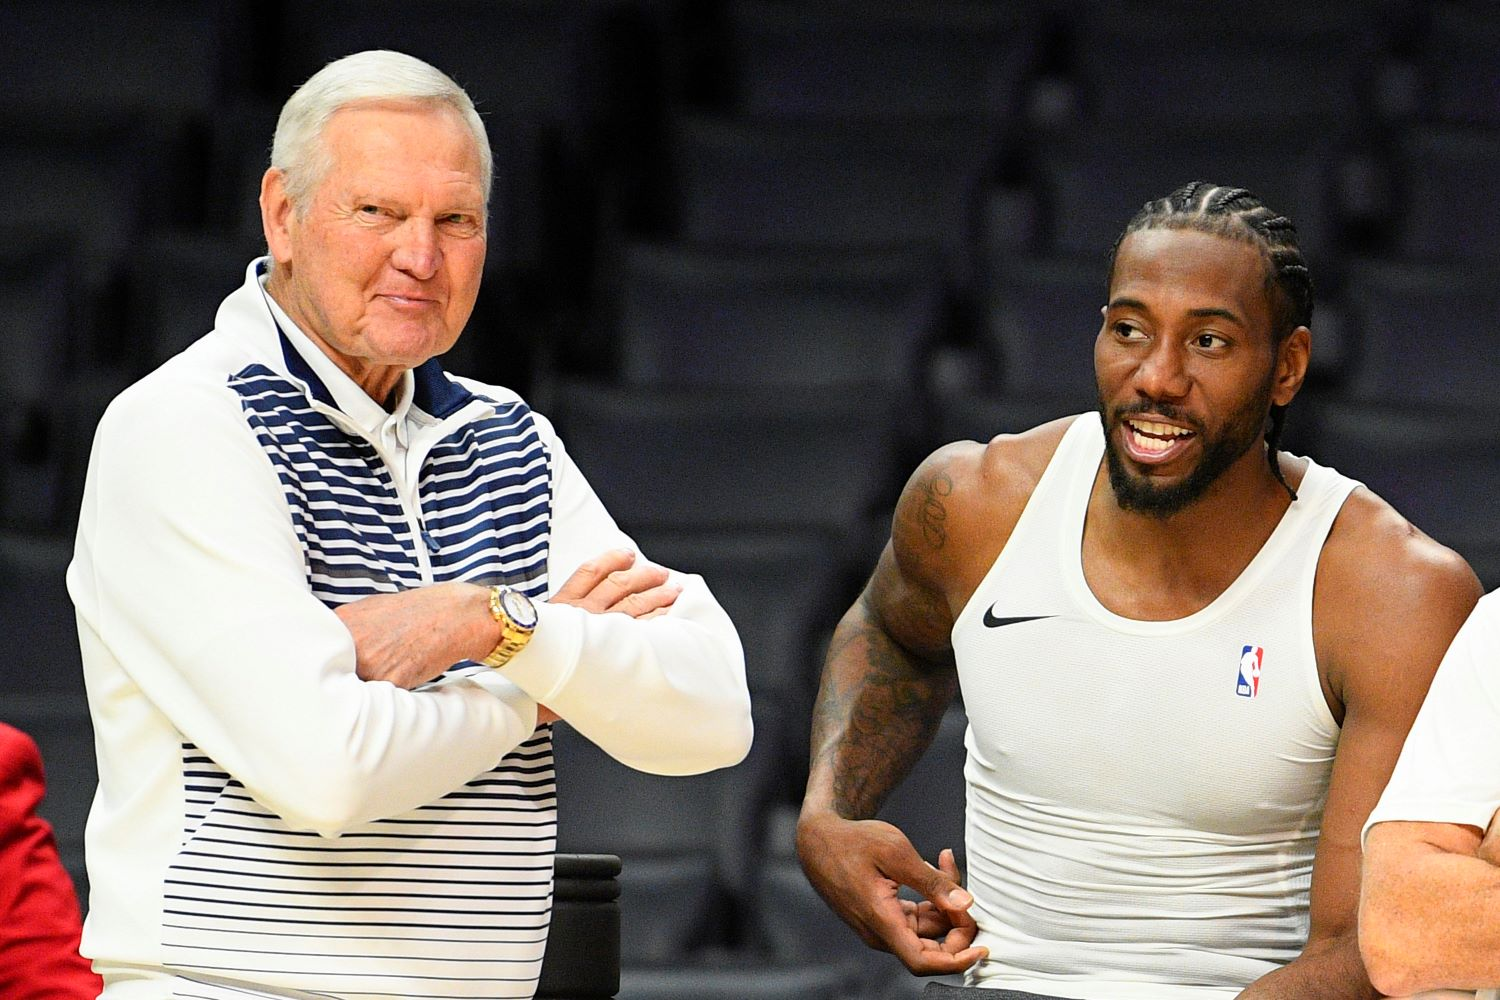 Jerry West faces a $2.5 million lawsuit from a man who claims to have helped bring Kawhi Leonard to the LA Clippers.